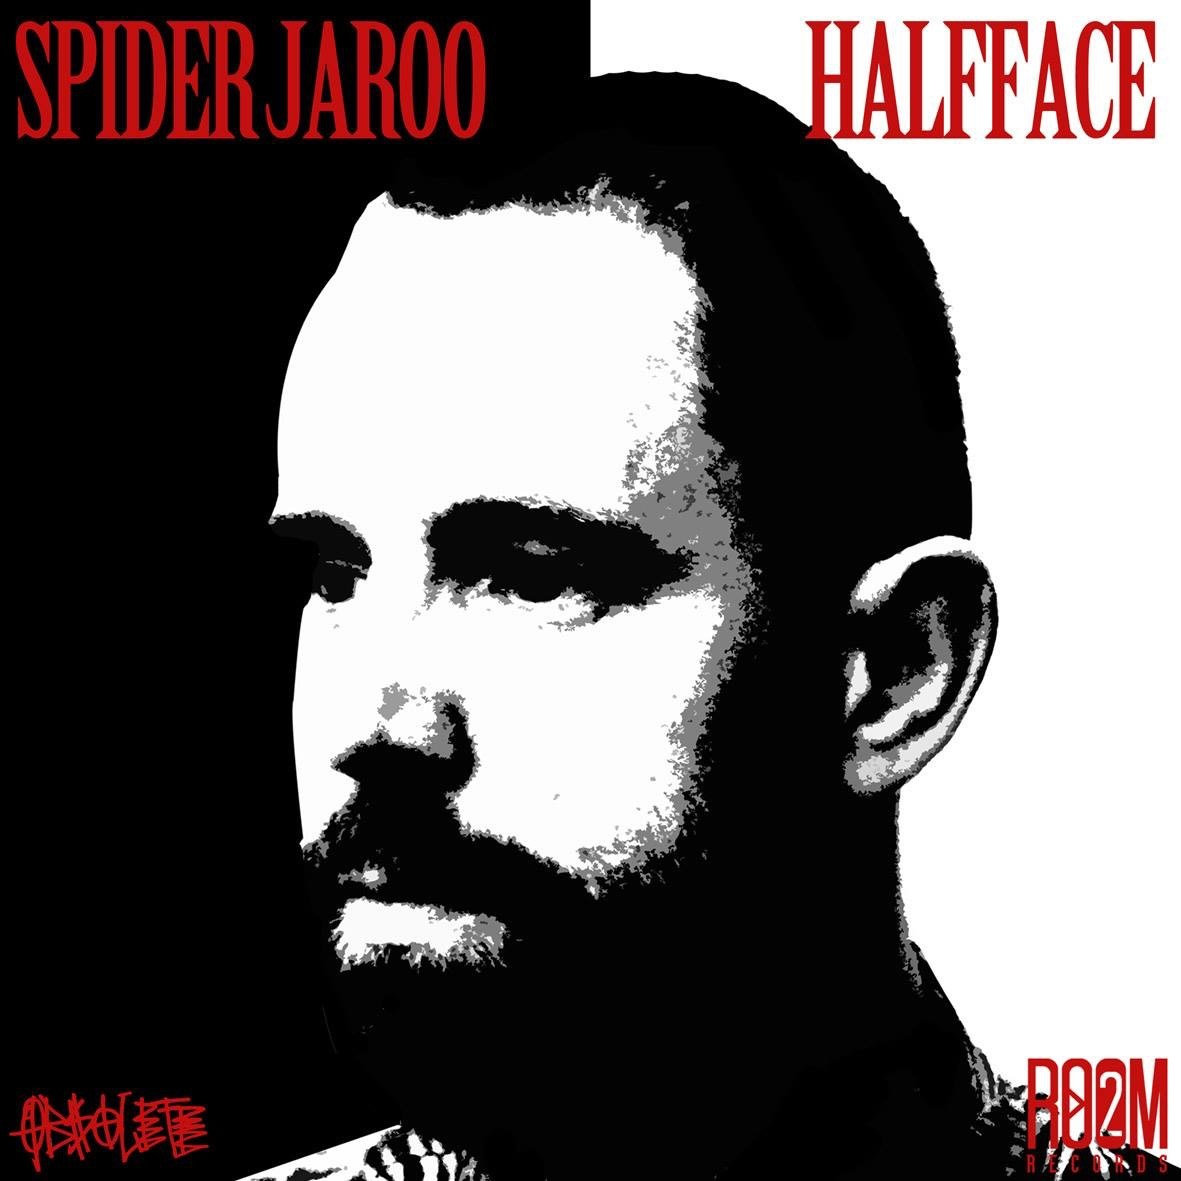 Cotton Castle Podcast: Artist interview with Spider Jaroo - Jan' 2017